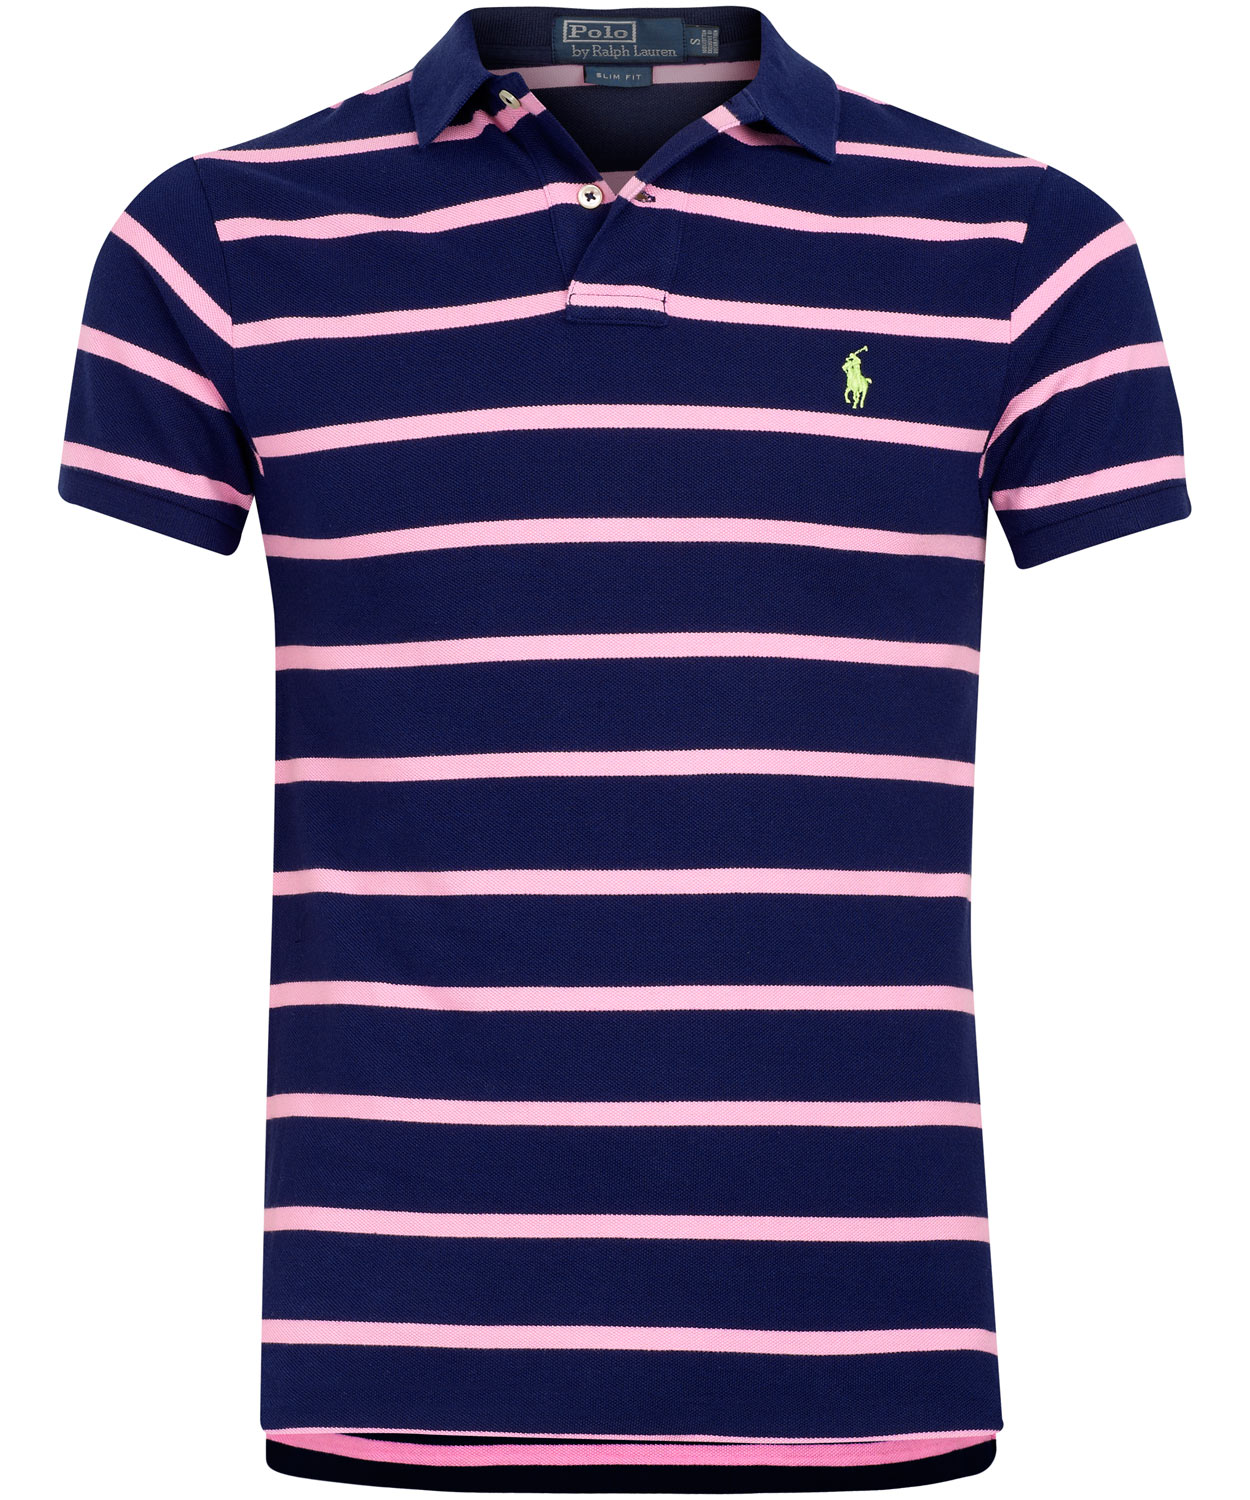 Polo ralph lauren navy and pink stripe polo shirt in blue for Pink and white ralph lauren shirt